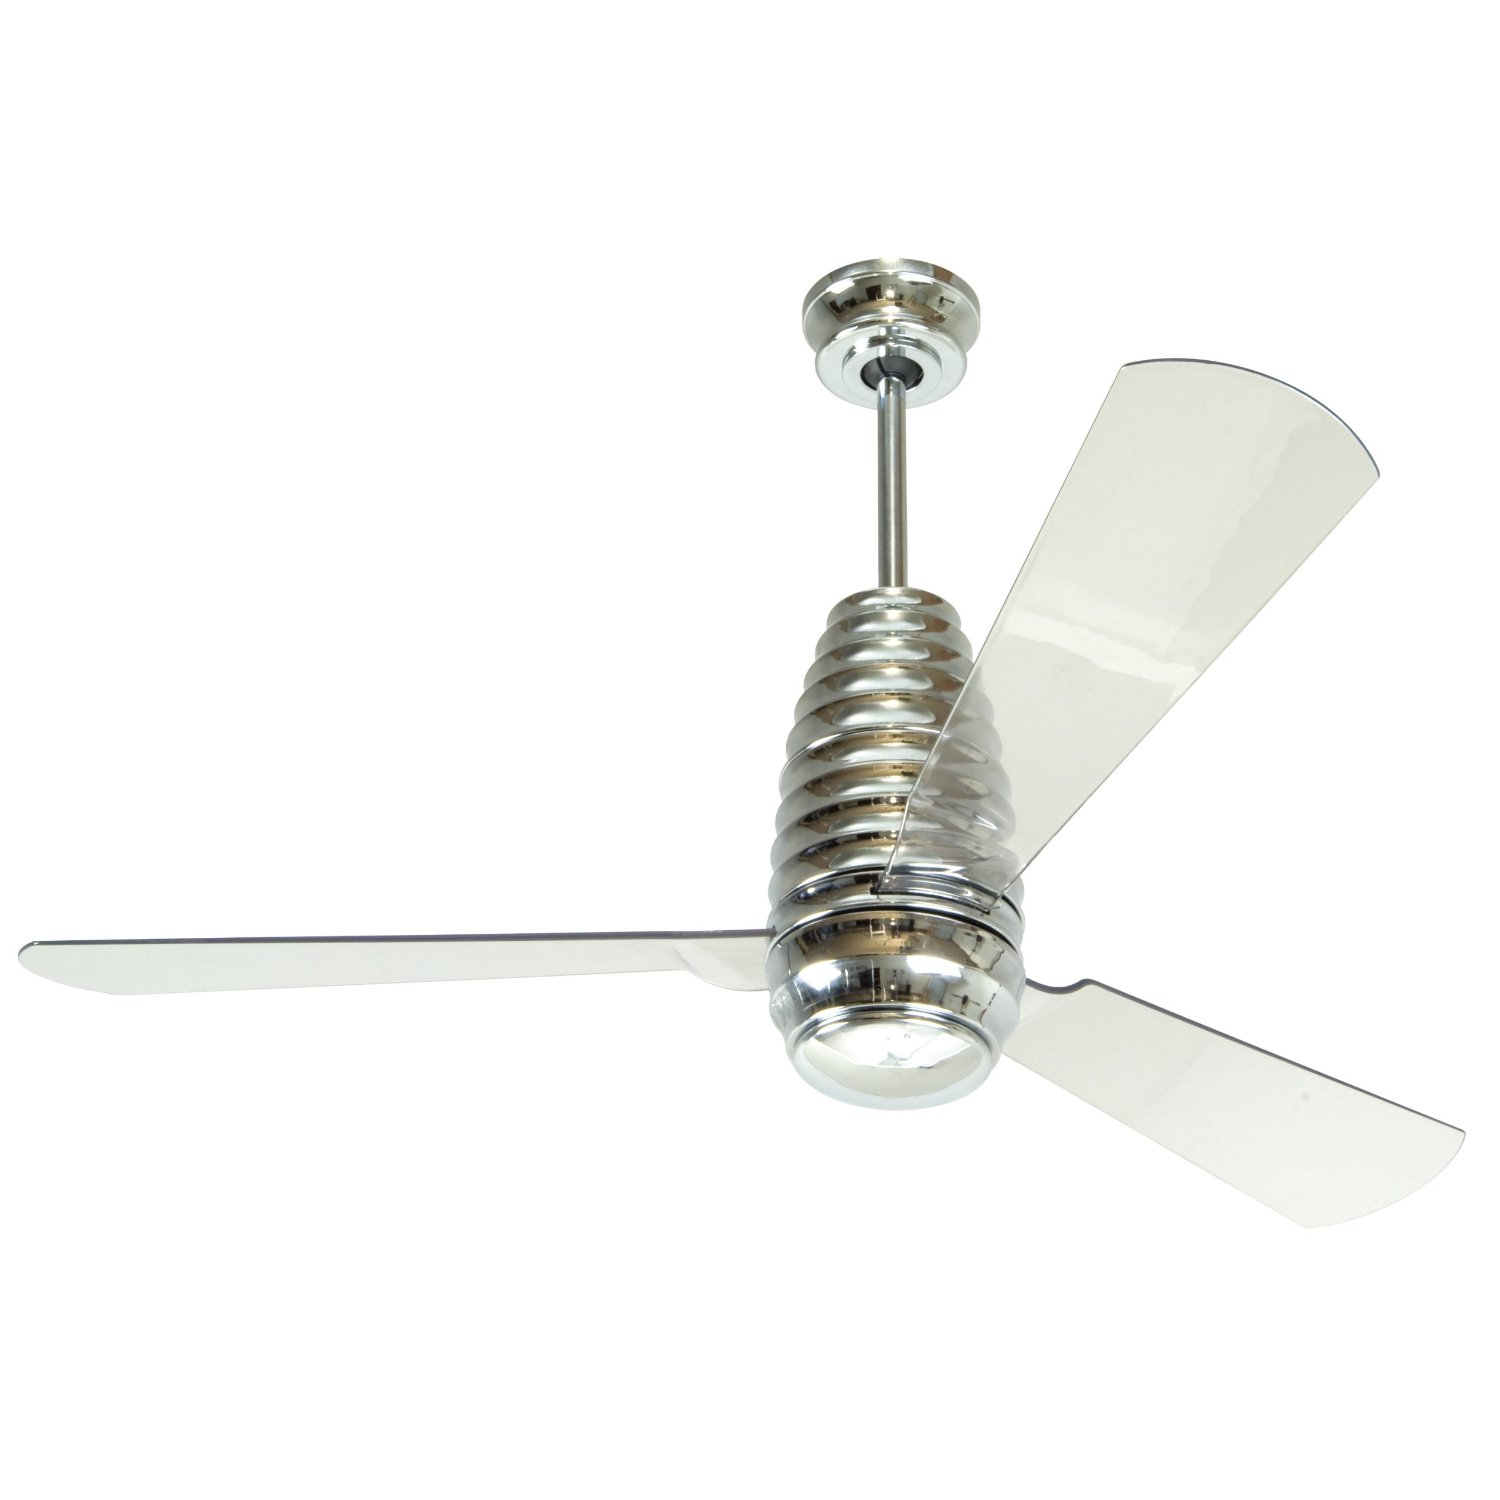 Acrylic ceiling fan great approach to include loads of intrigue